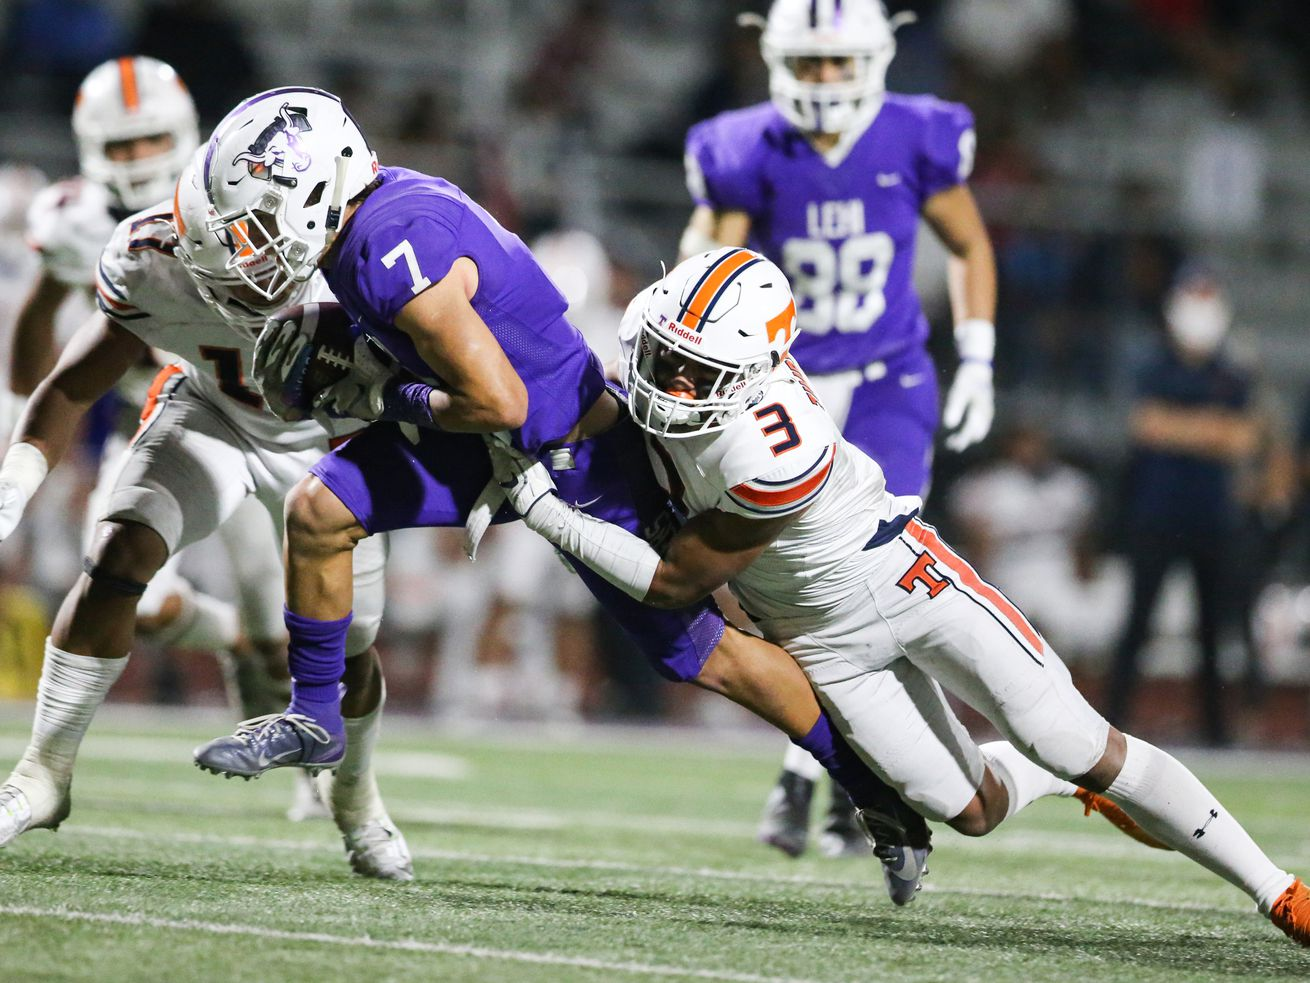 Lehi's Grady Gonzalez (7) carries the ball for a first down against Timpview's Raider Damuni (3) during a high school football game at Lehi High School in Lehi on Friday, Sept. 25, 2020.